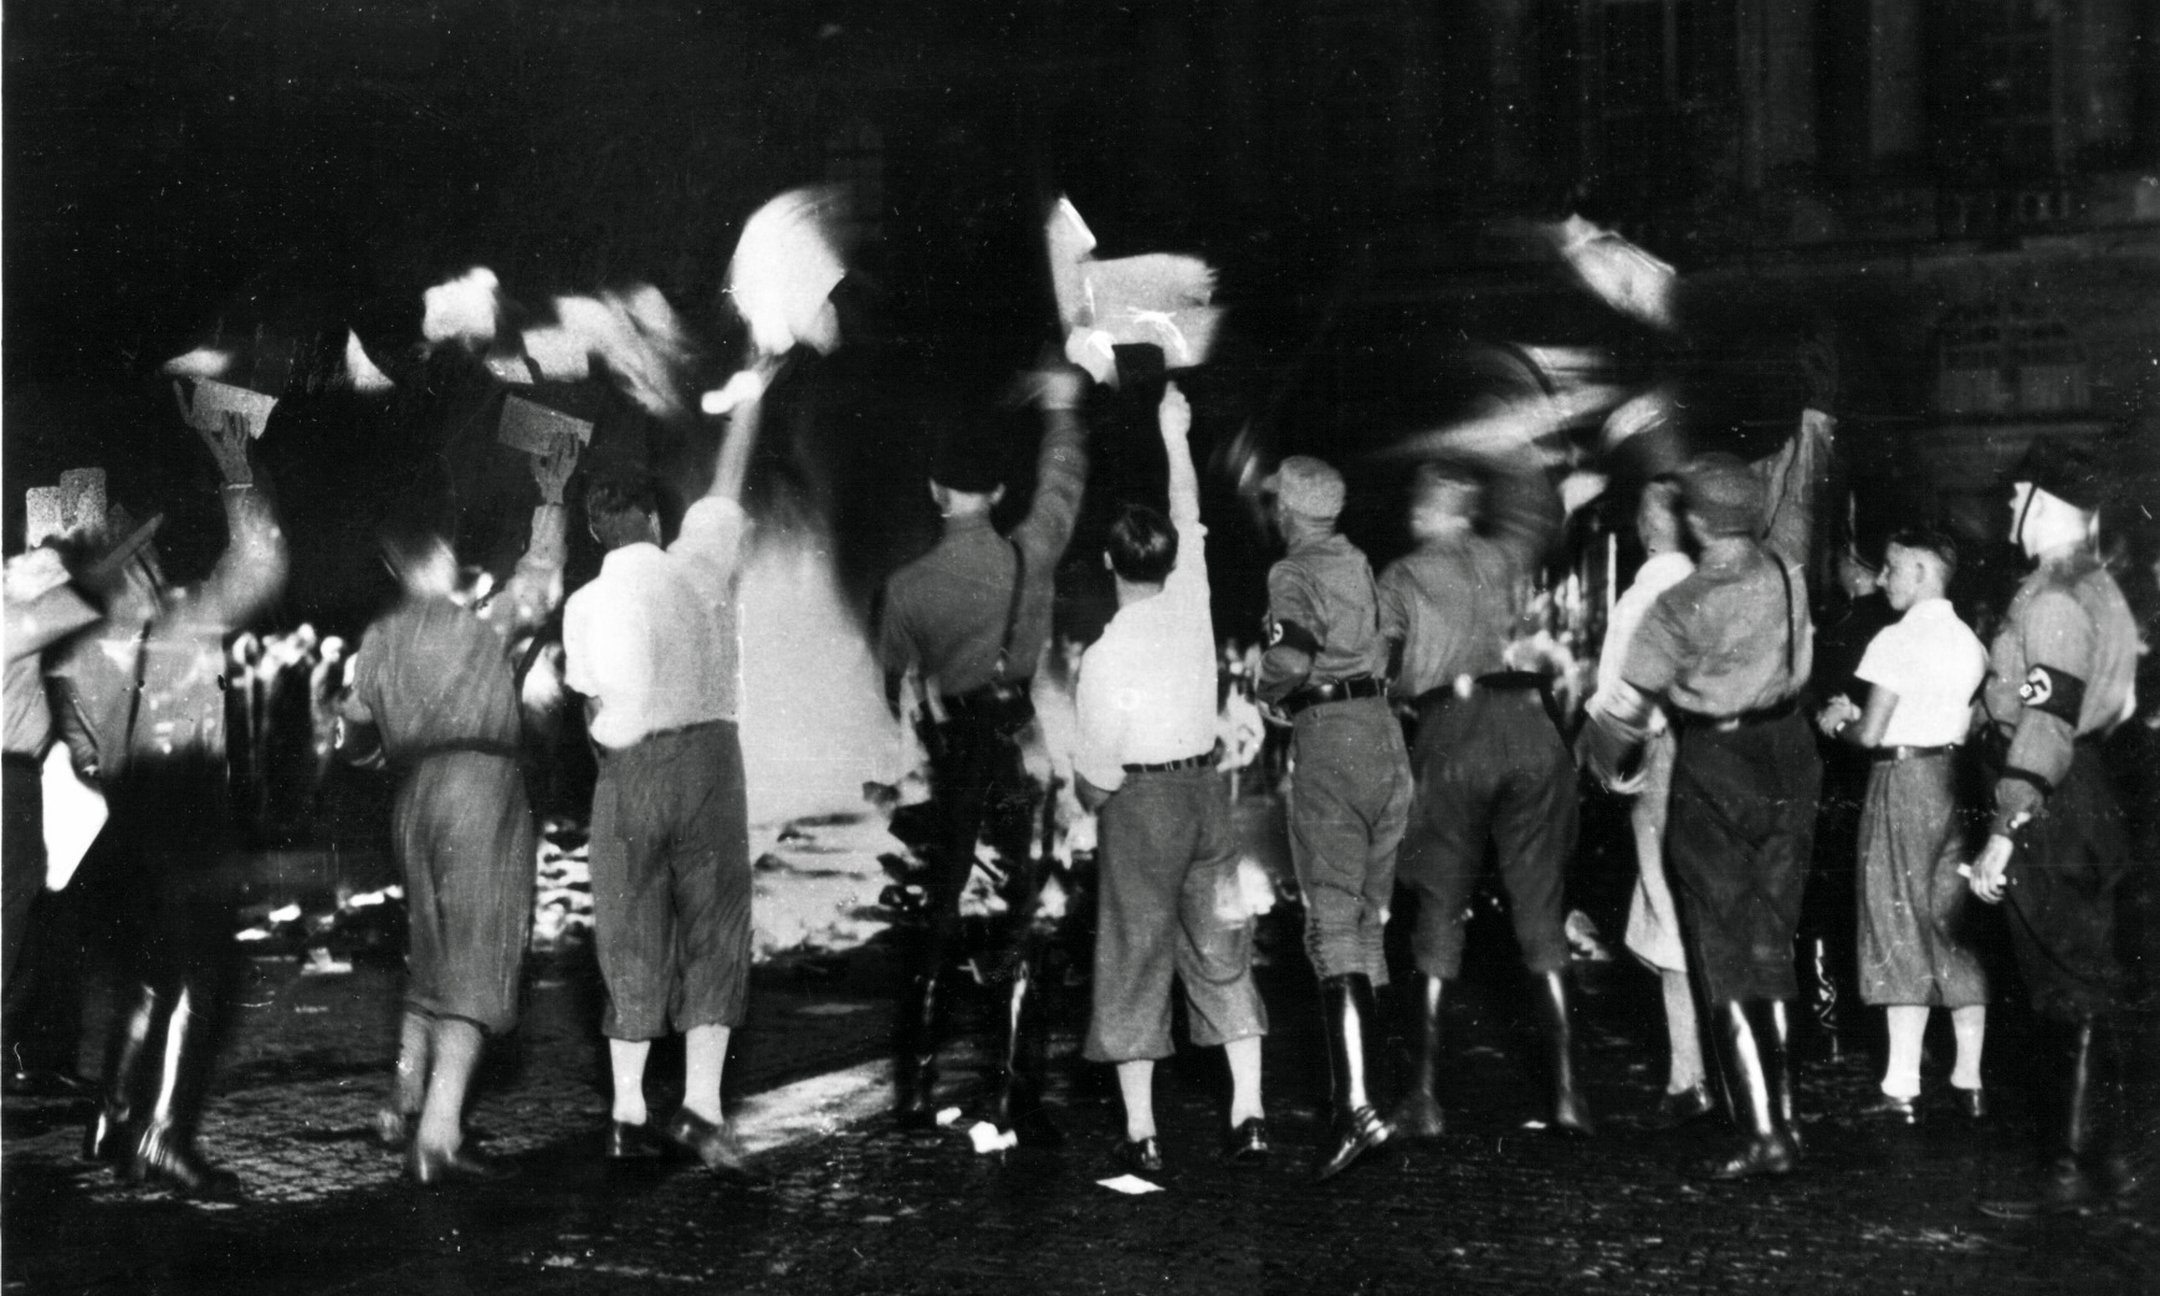 On 10 May 1933, students burn 'un-German' books on Opernplatz in Berlin. In other univerisity cities, students also burn books by writers like Karl Marx, Sigmund Freud and Erich Maria Remarque.